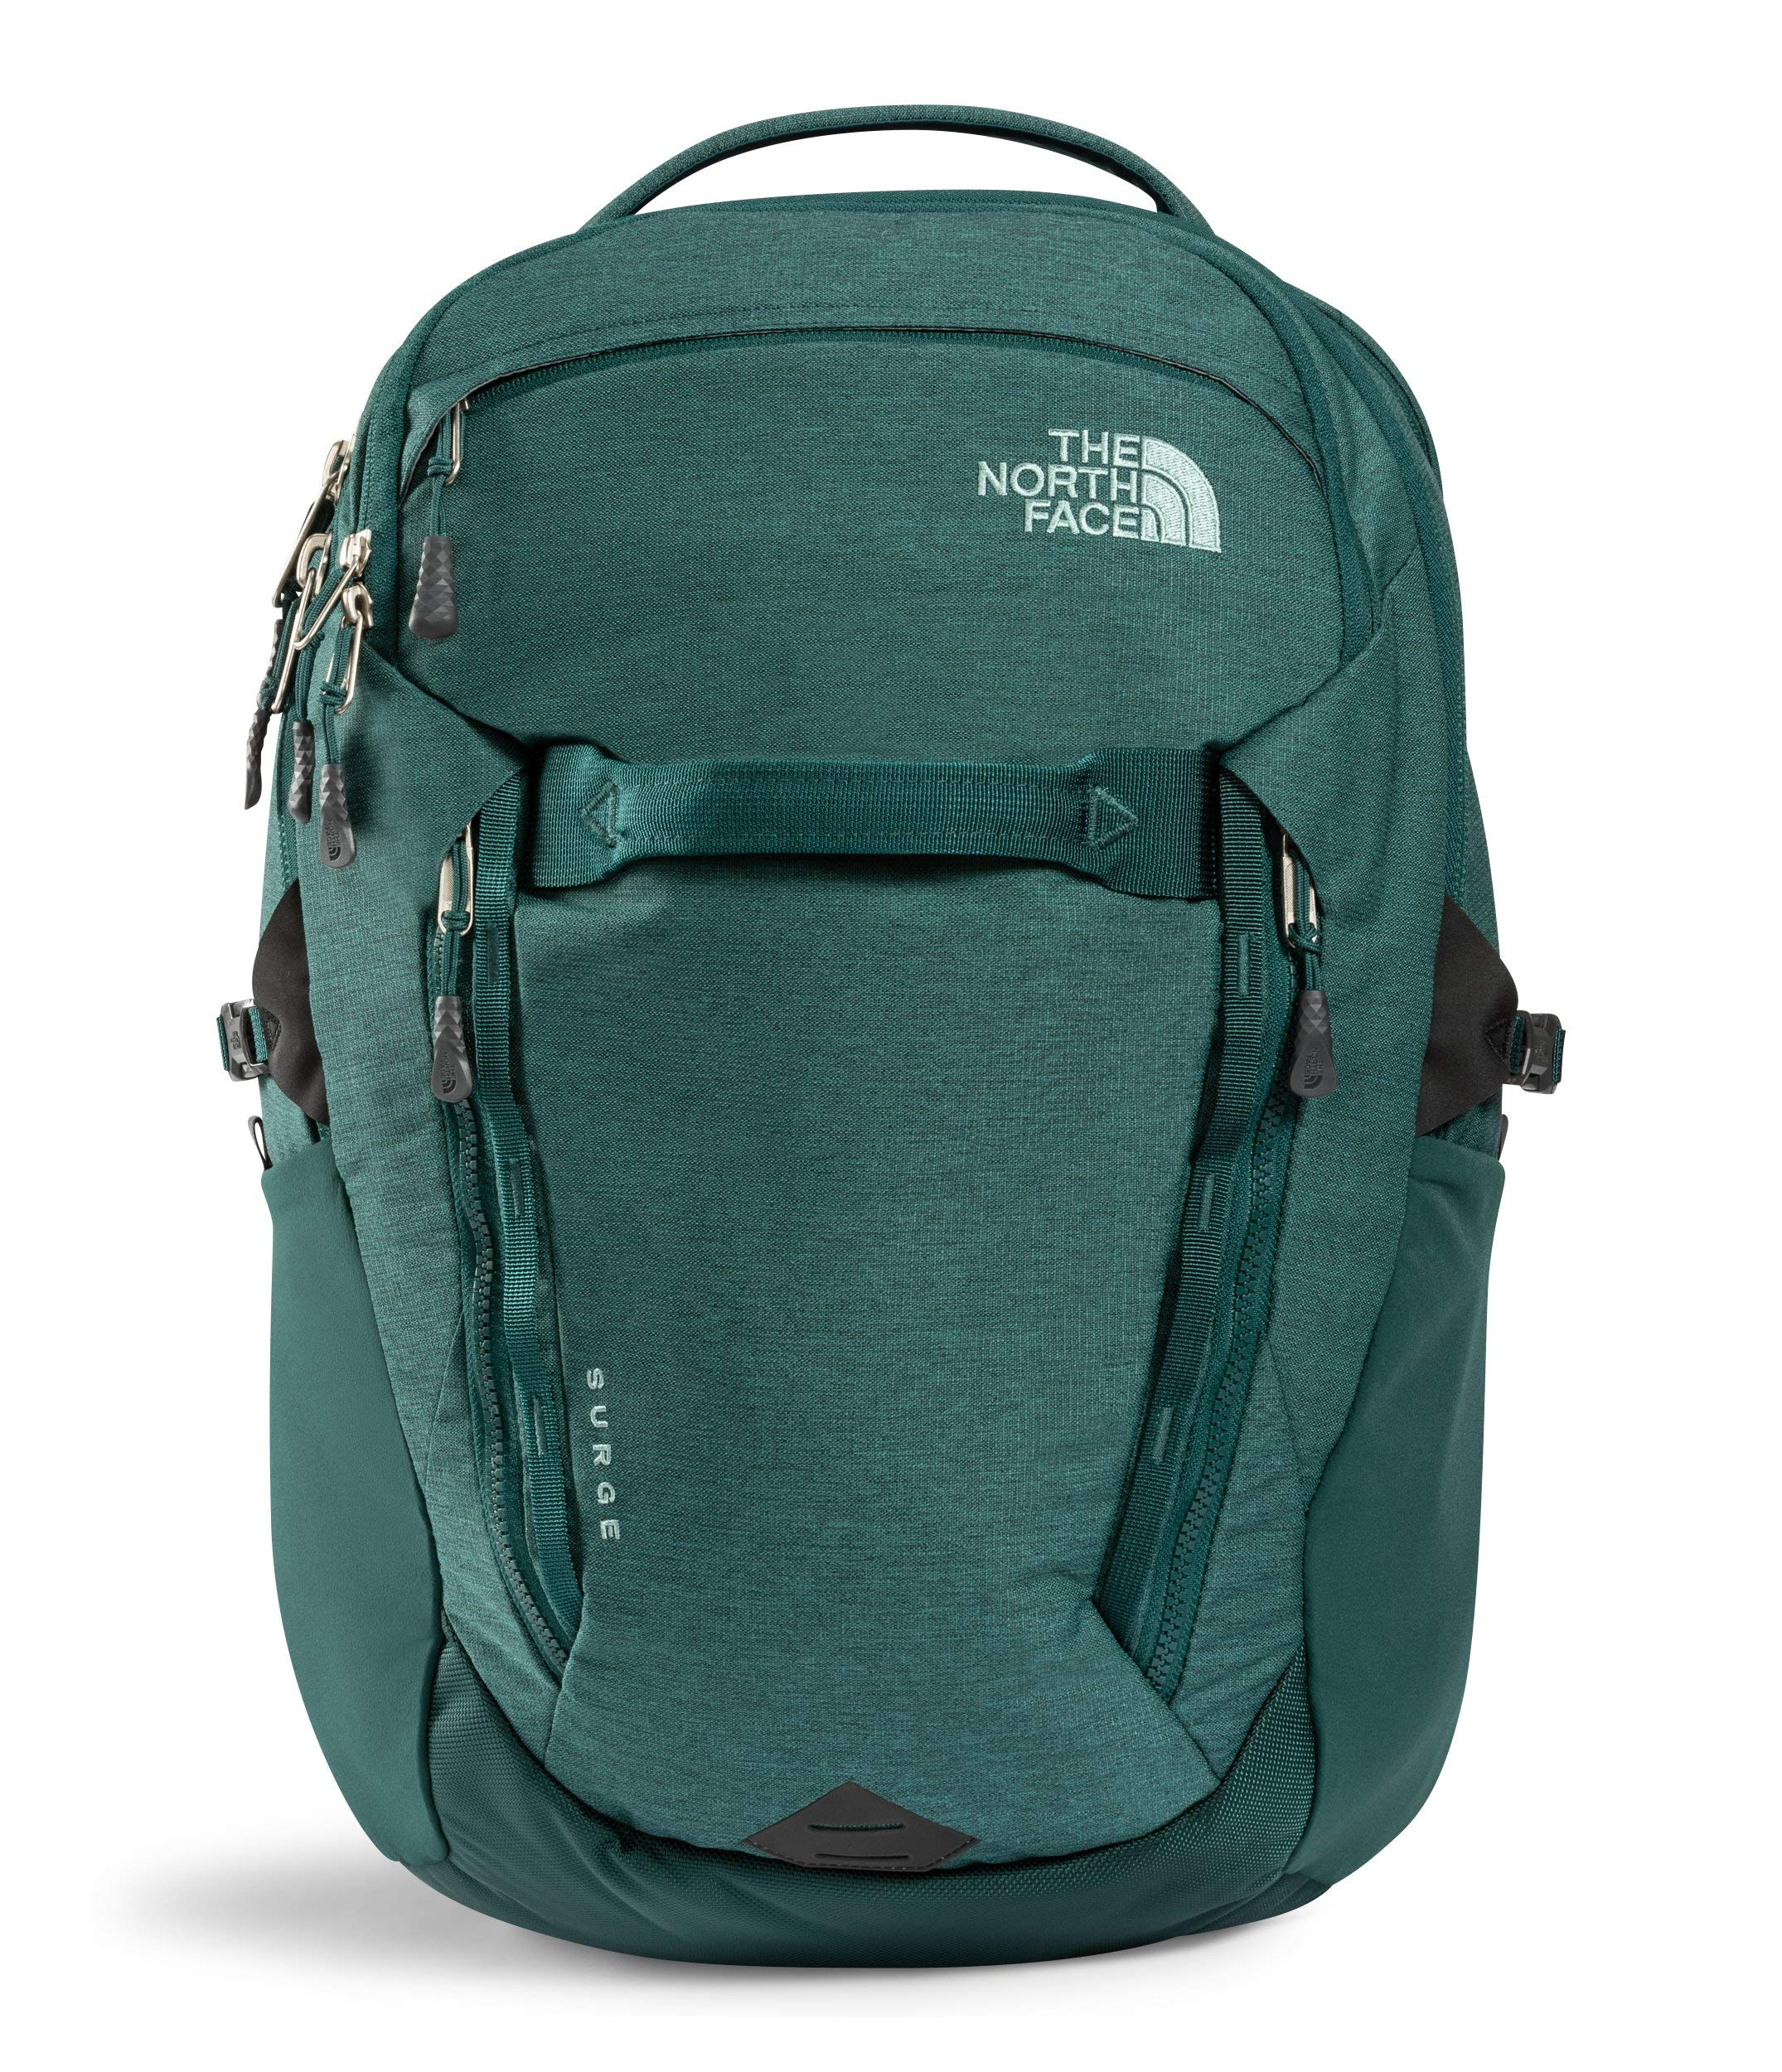 The North Face Women's Surge Backpack, Ponderosa Green Light Heather/Trellis Green by The North Face